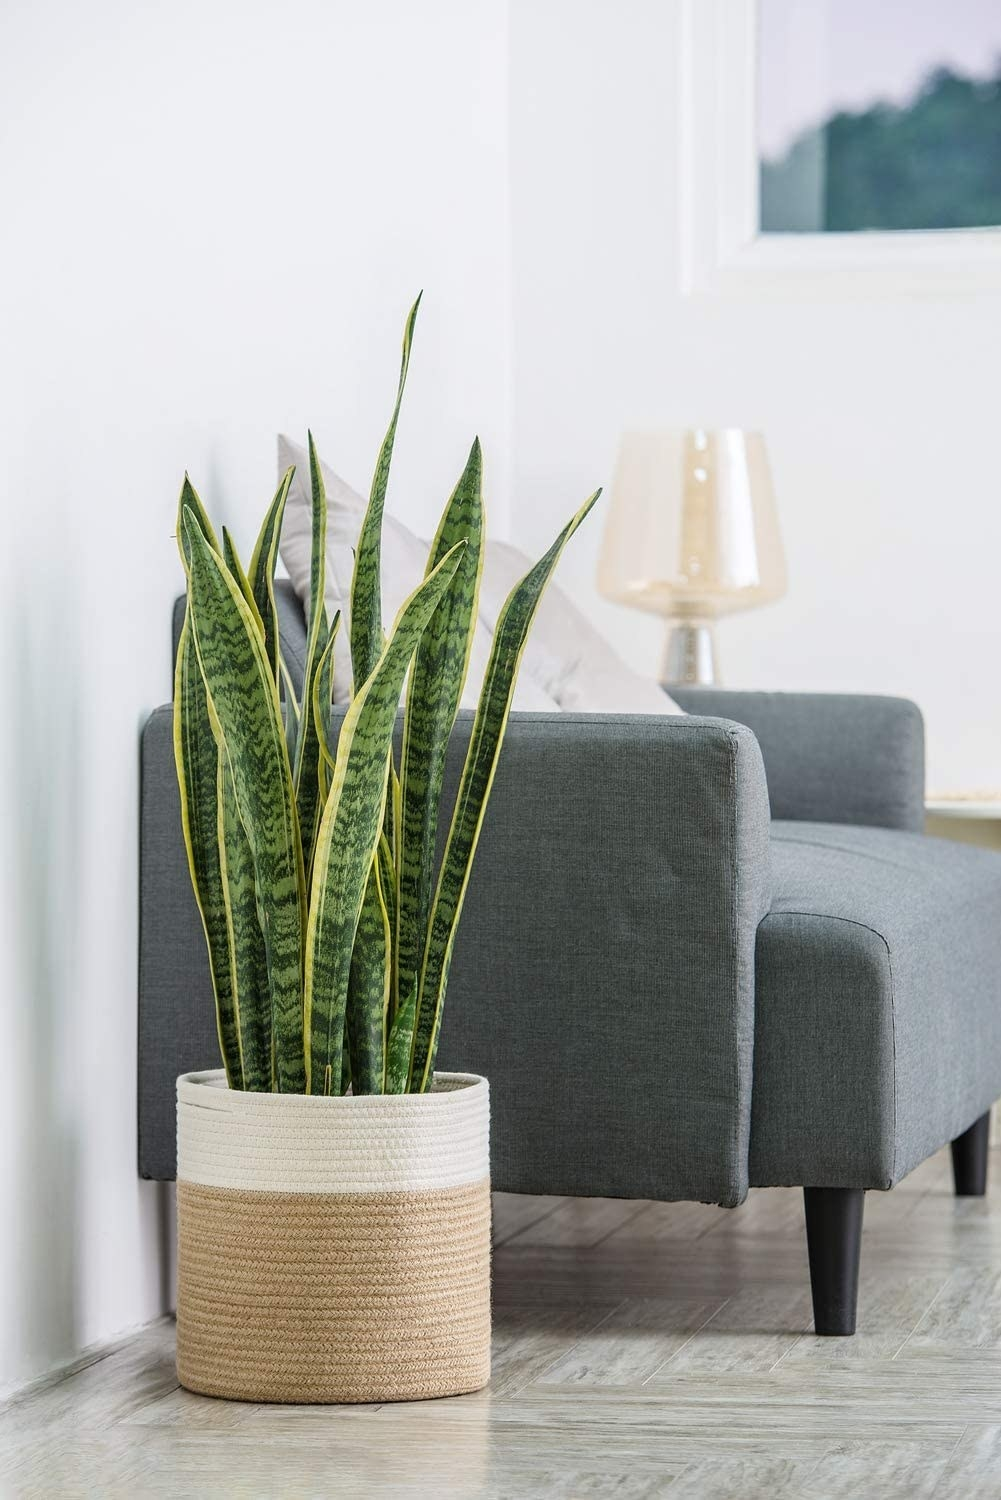 The rope plant basket next to a sofa.